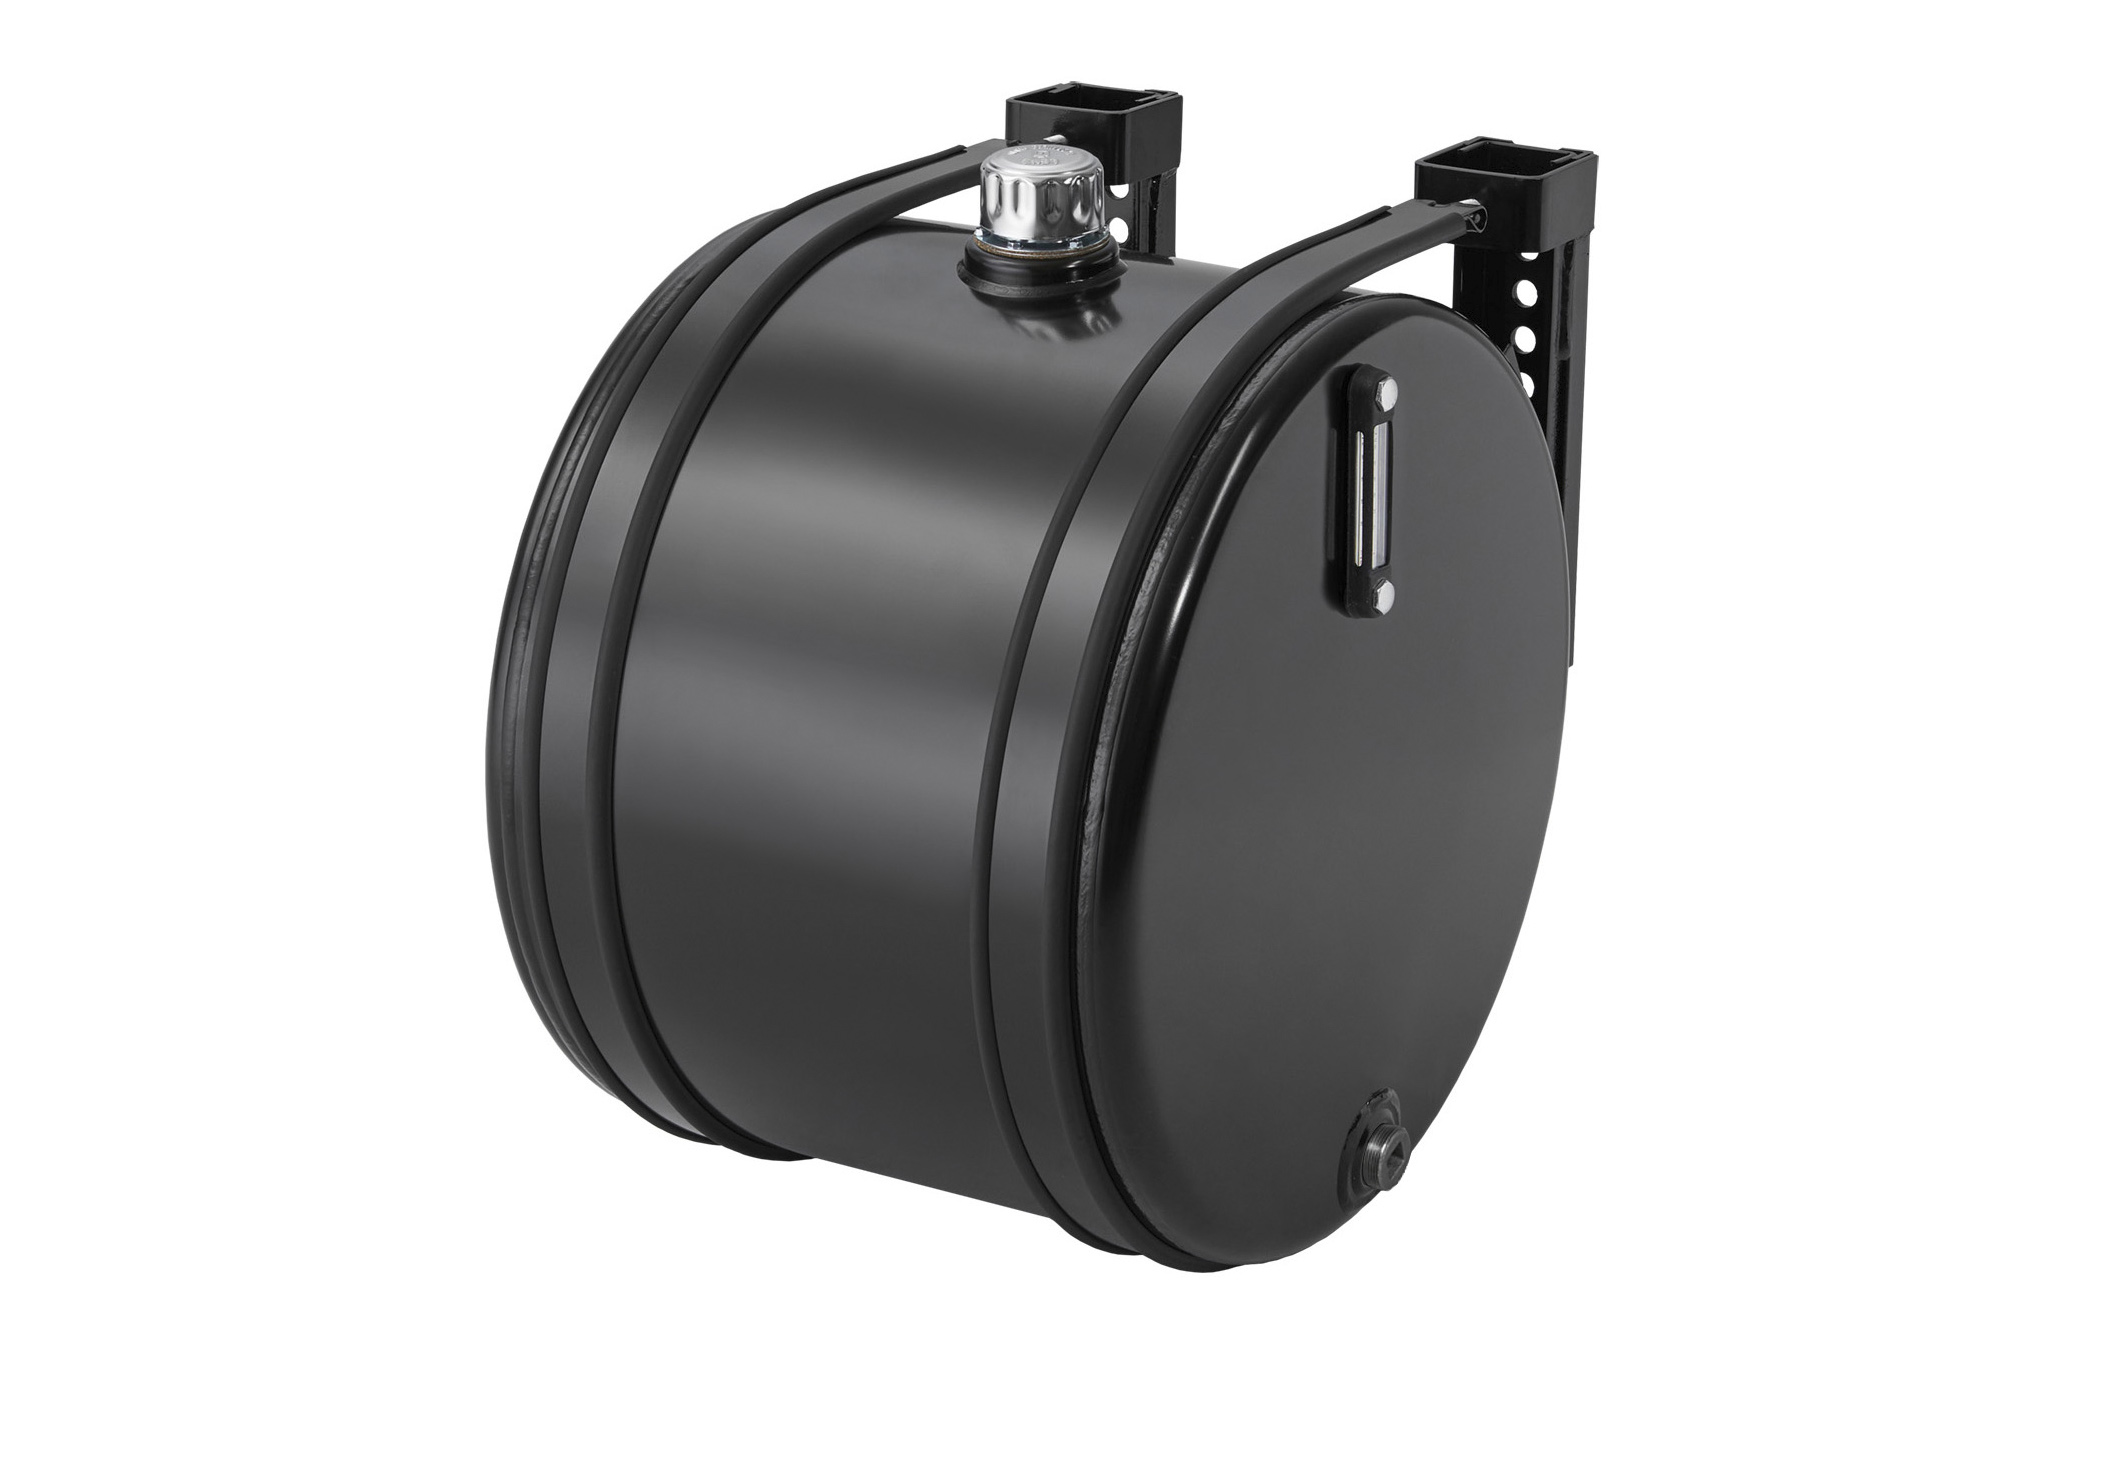 Saddlemount-Tanks - Steel-Saddlemount-35-Gallon